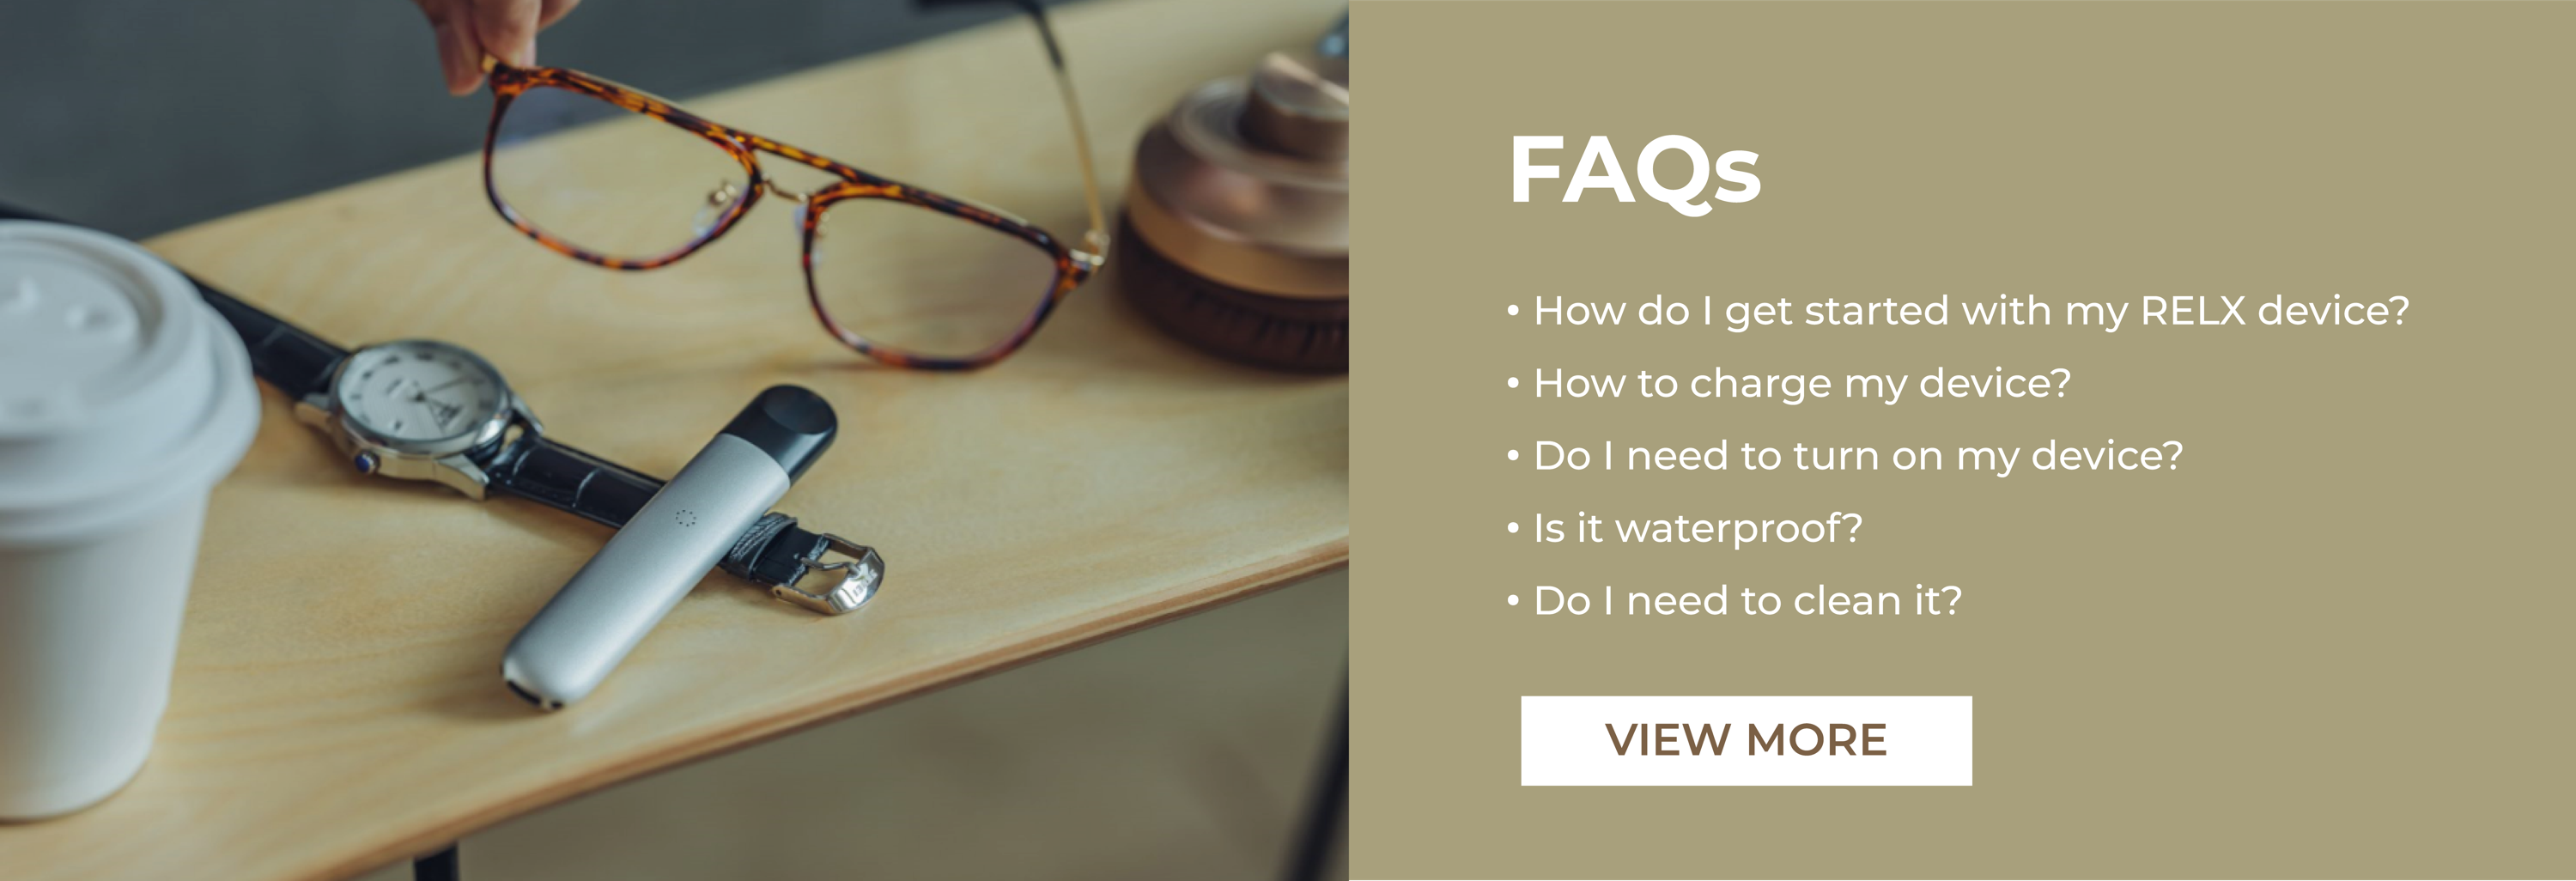 Have questions? Check FAQs here.